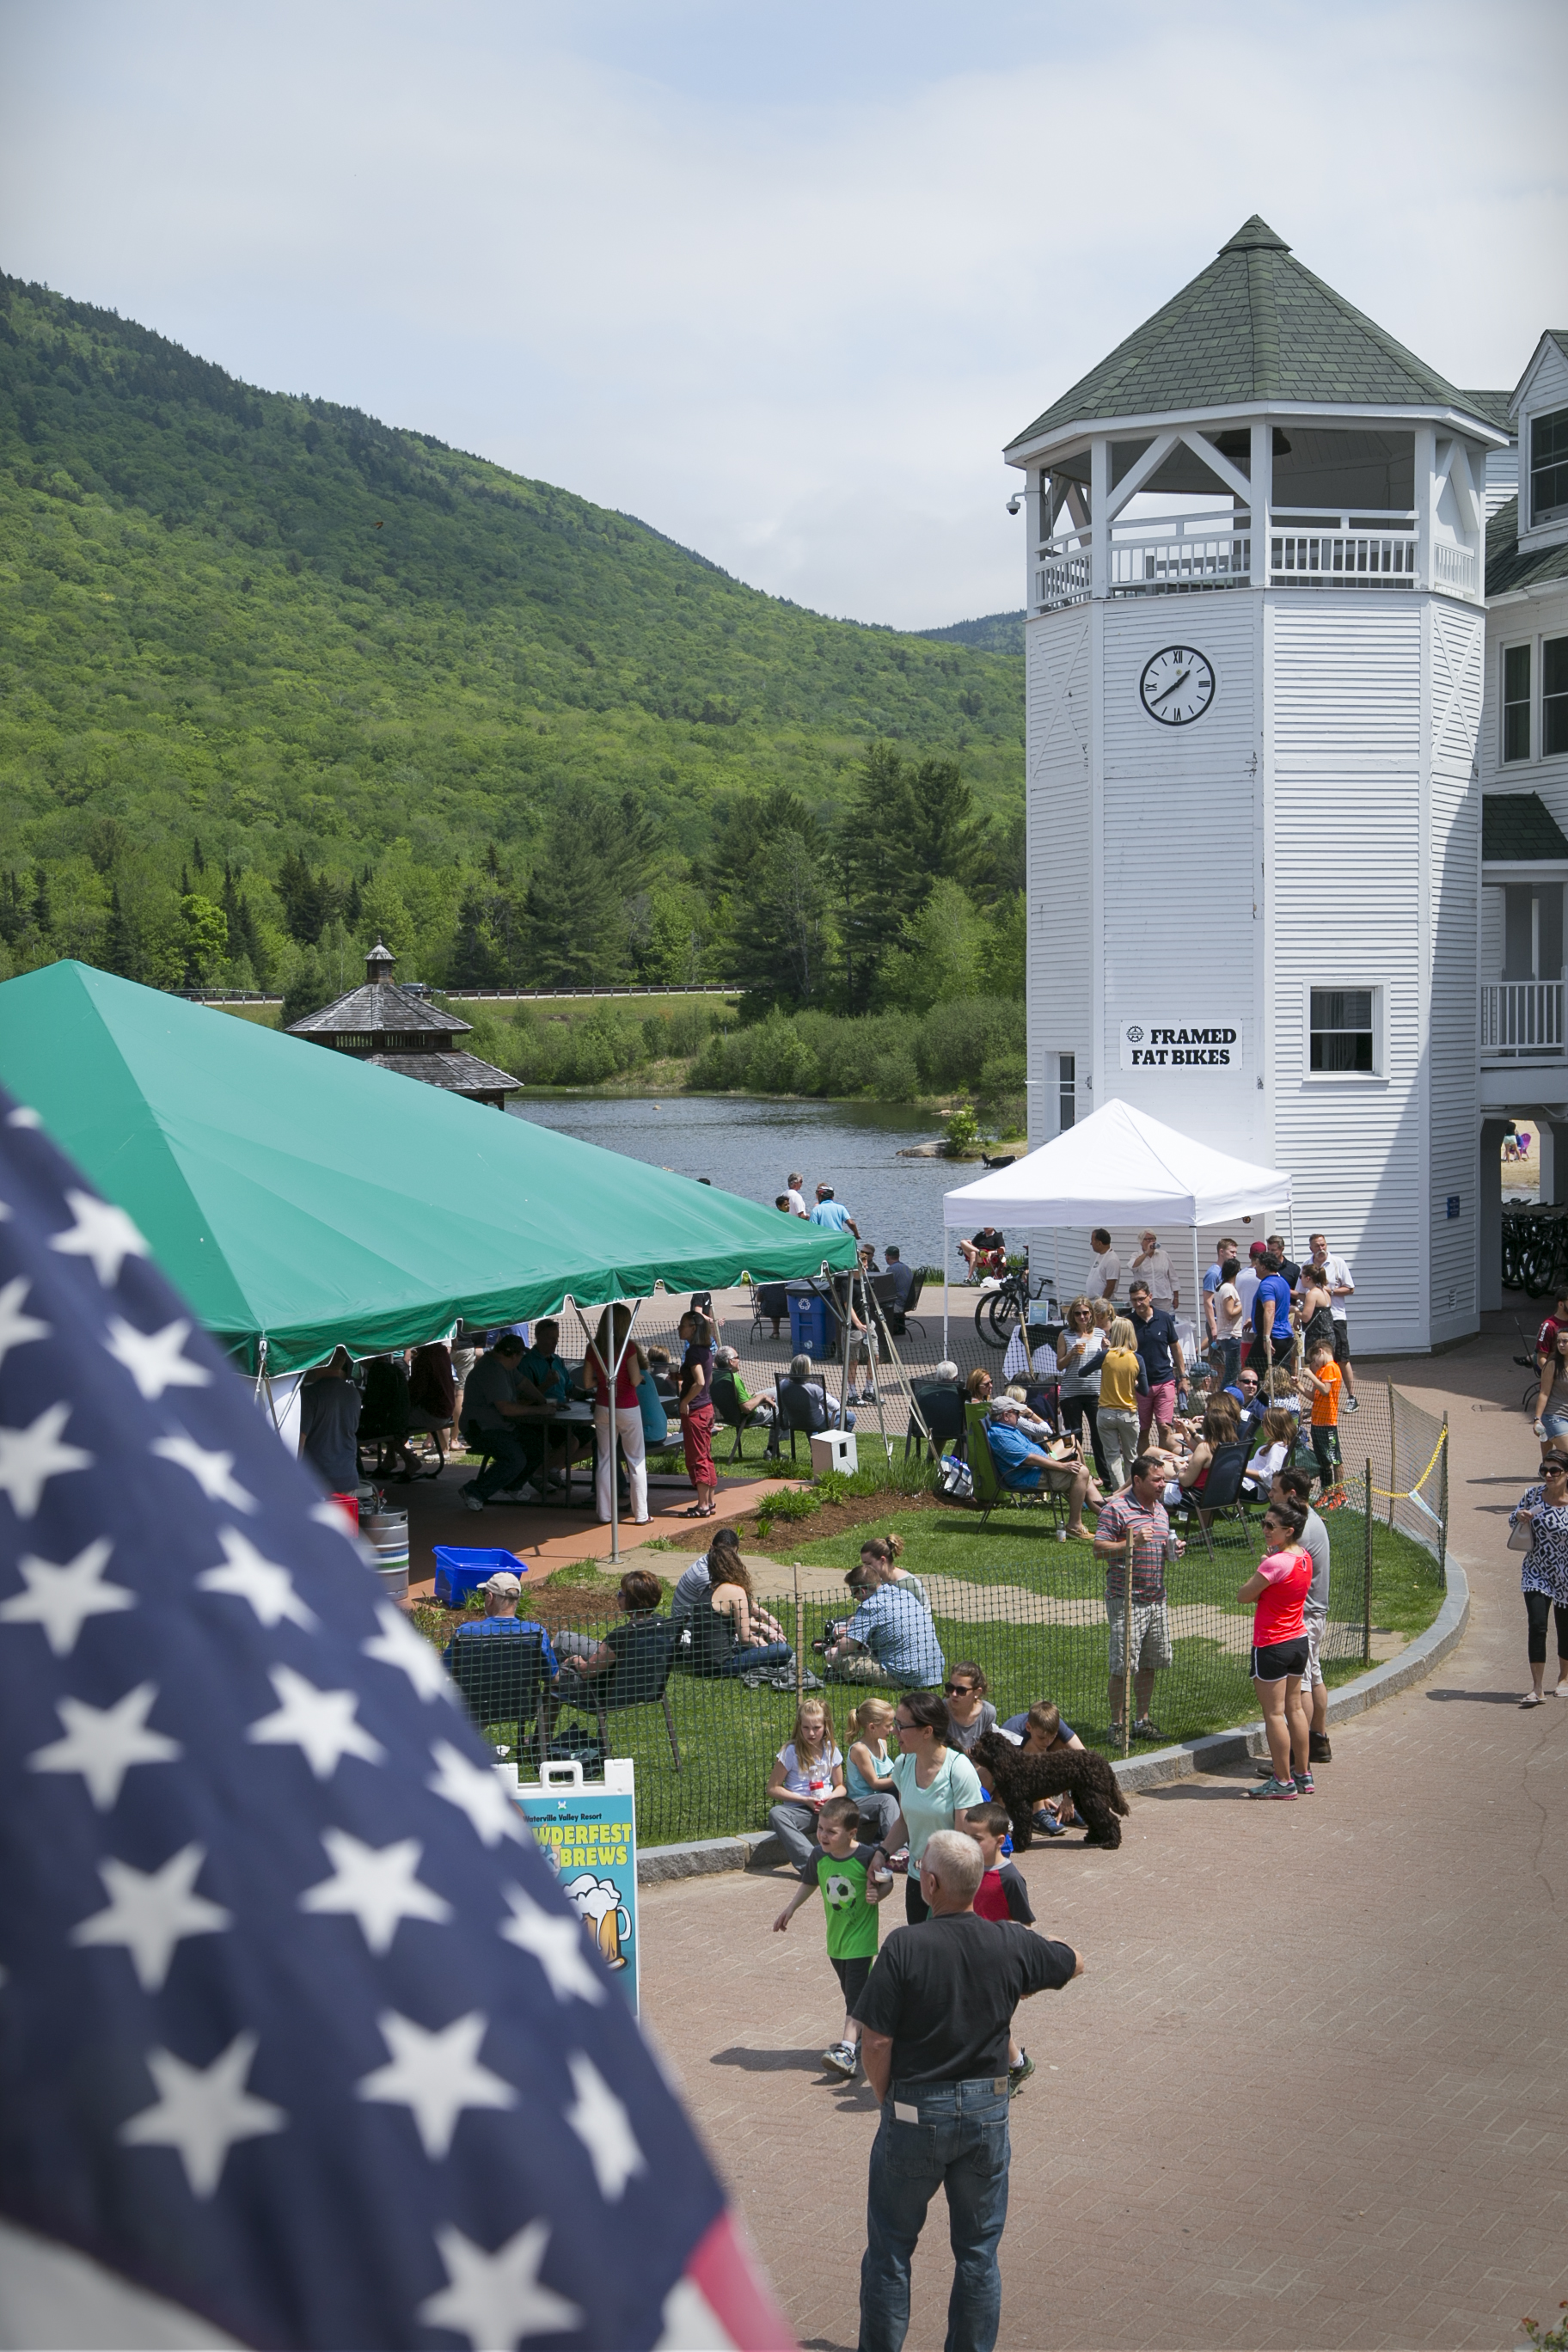 The 6th Annual Artisan Fair will be held in Waterville Valley's Town Square on Saturday, July 13, 2019, from 10 a.m. to 4 p.m.